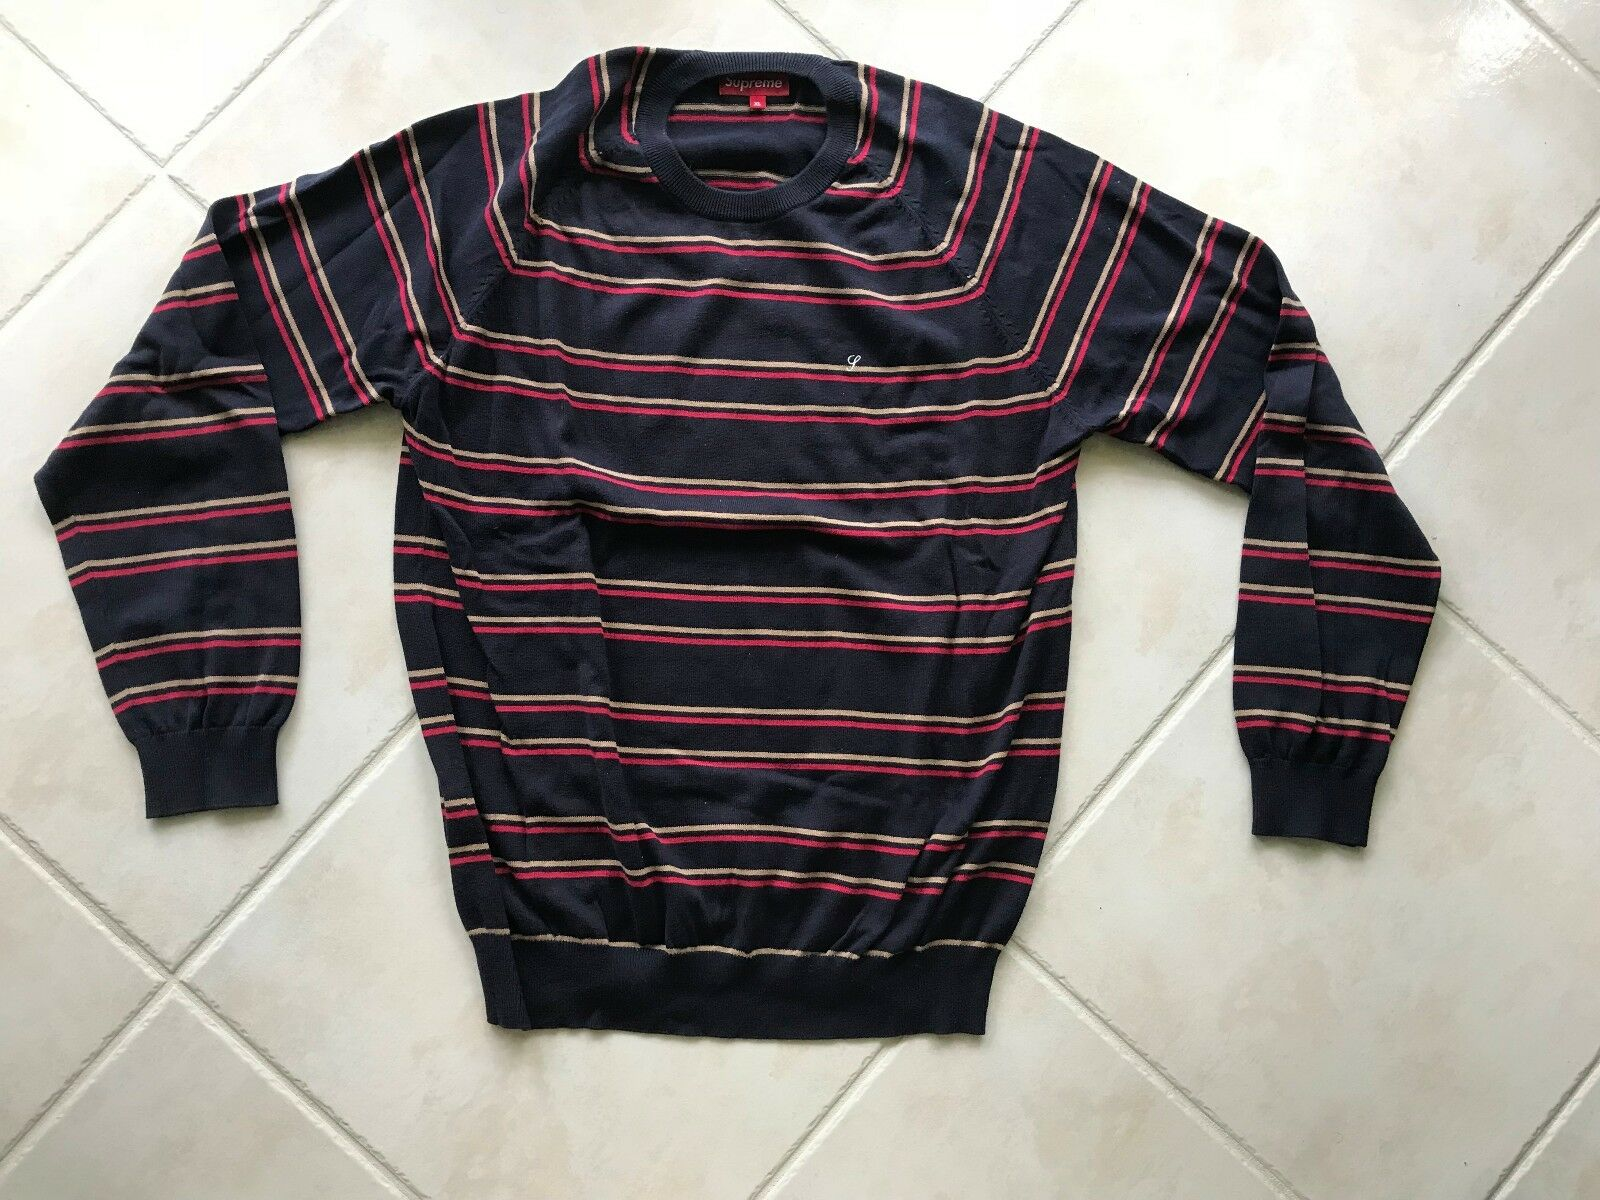 RARE Supreme Long Sleeve Striped Sweater FW10 Pull Over Shirt Navy Size XL